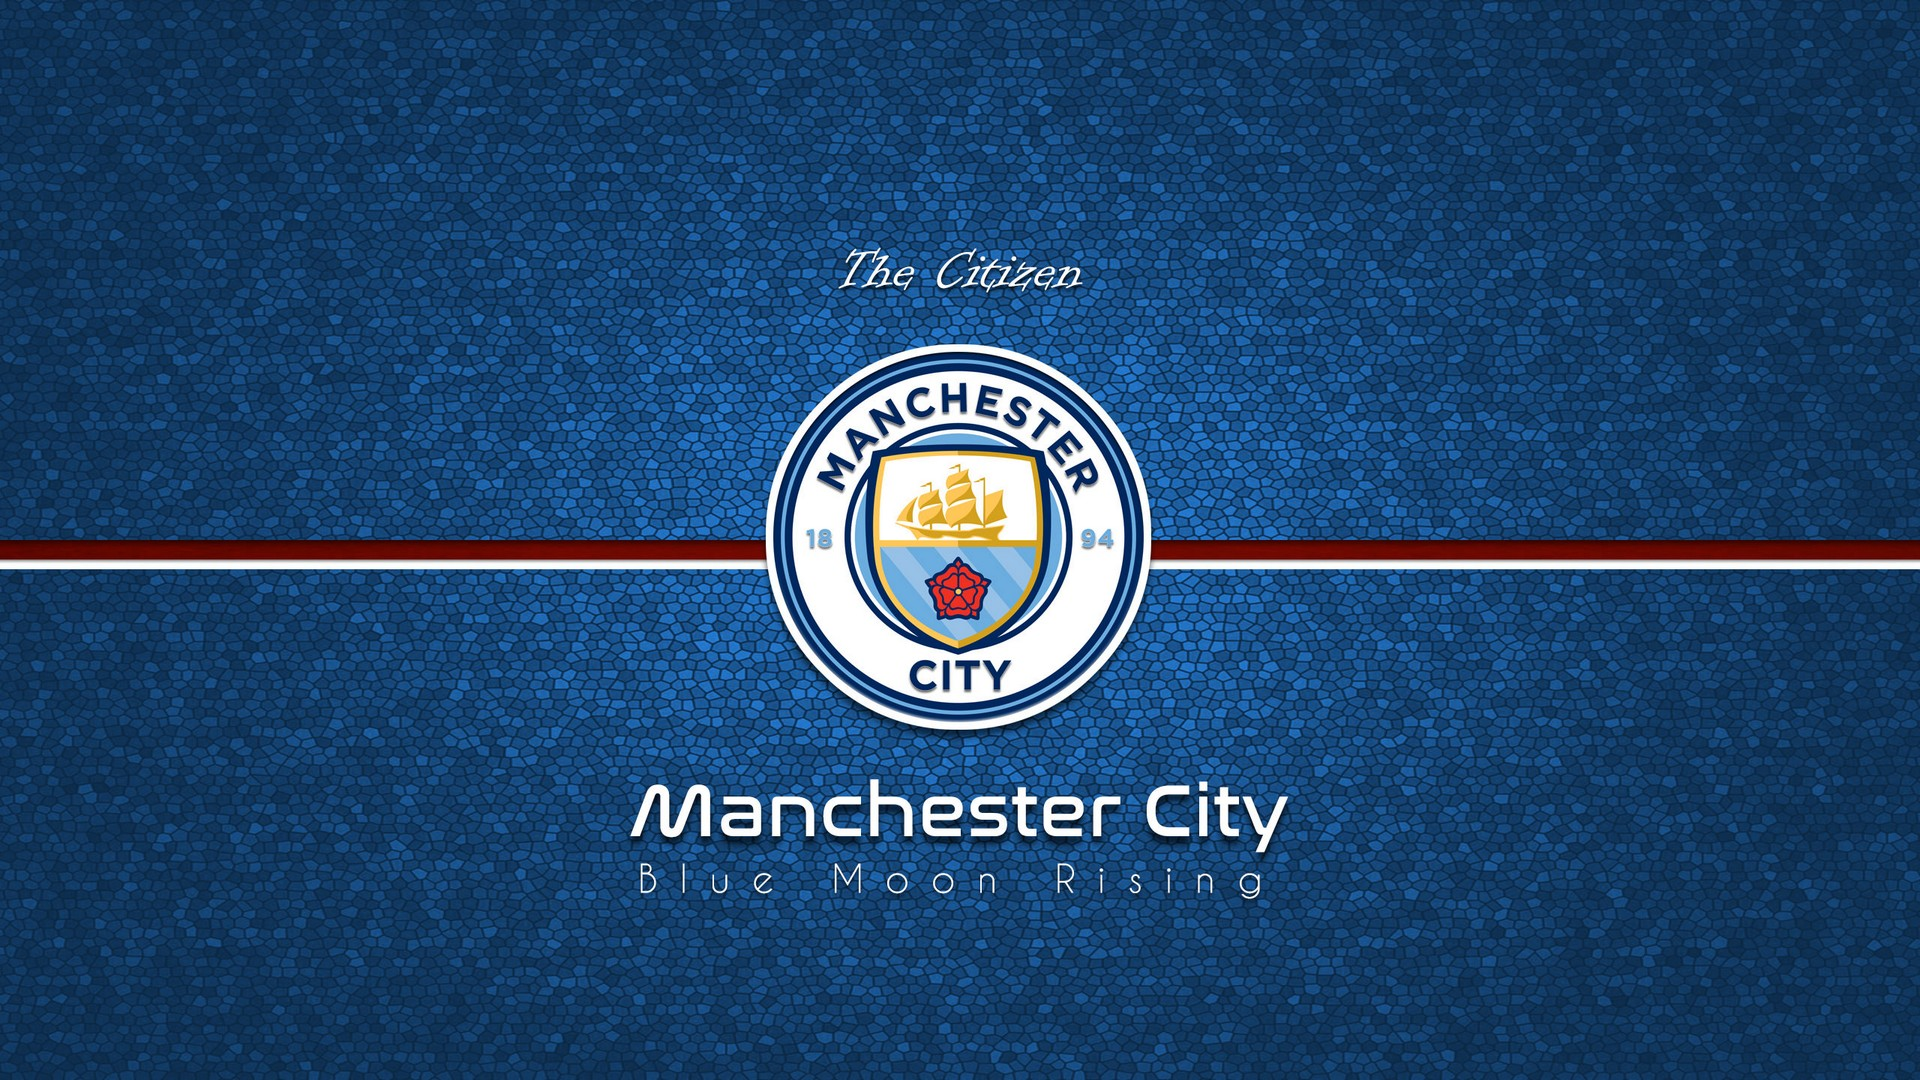 Manchester City Wallpaper HD 2019 Football Wallpaper 1920x1080